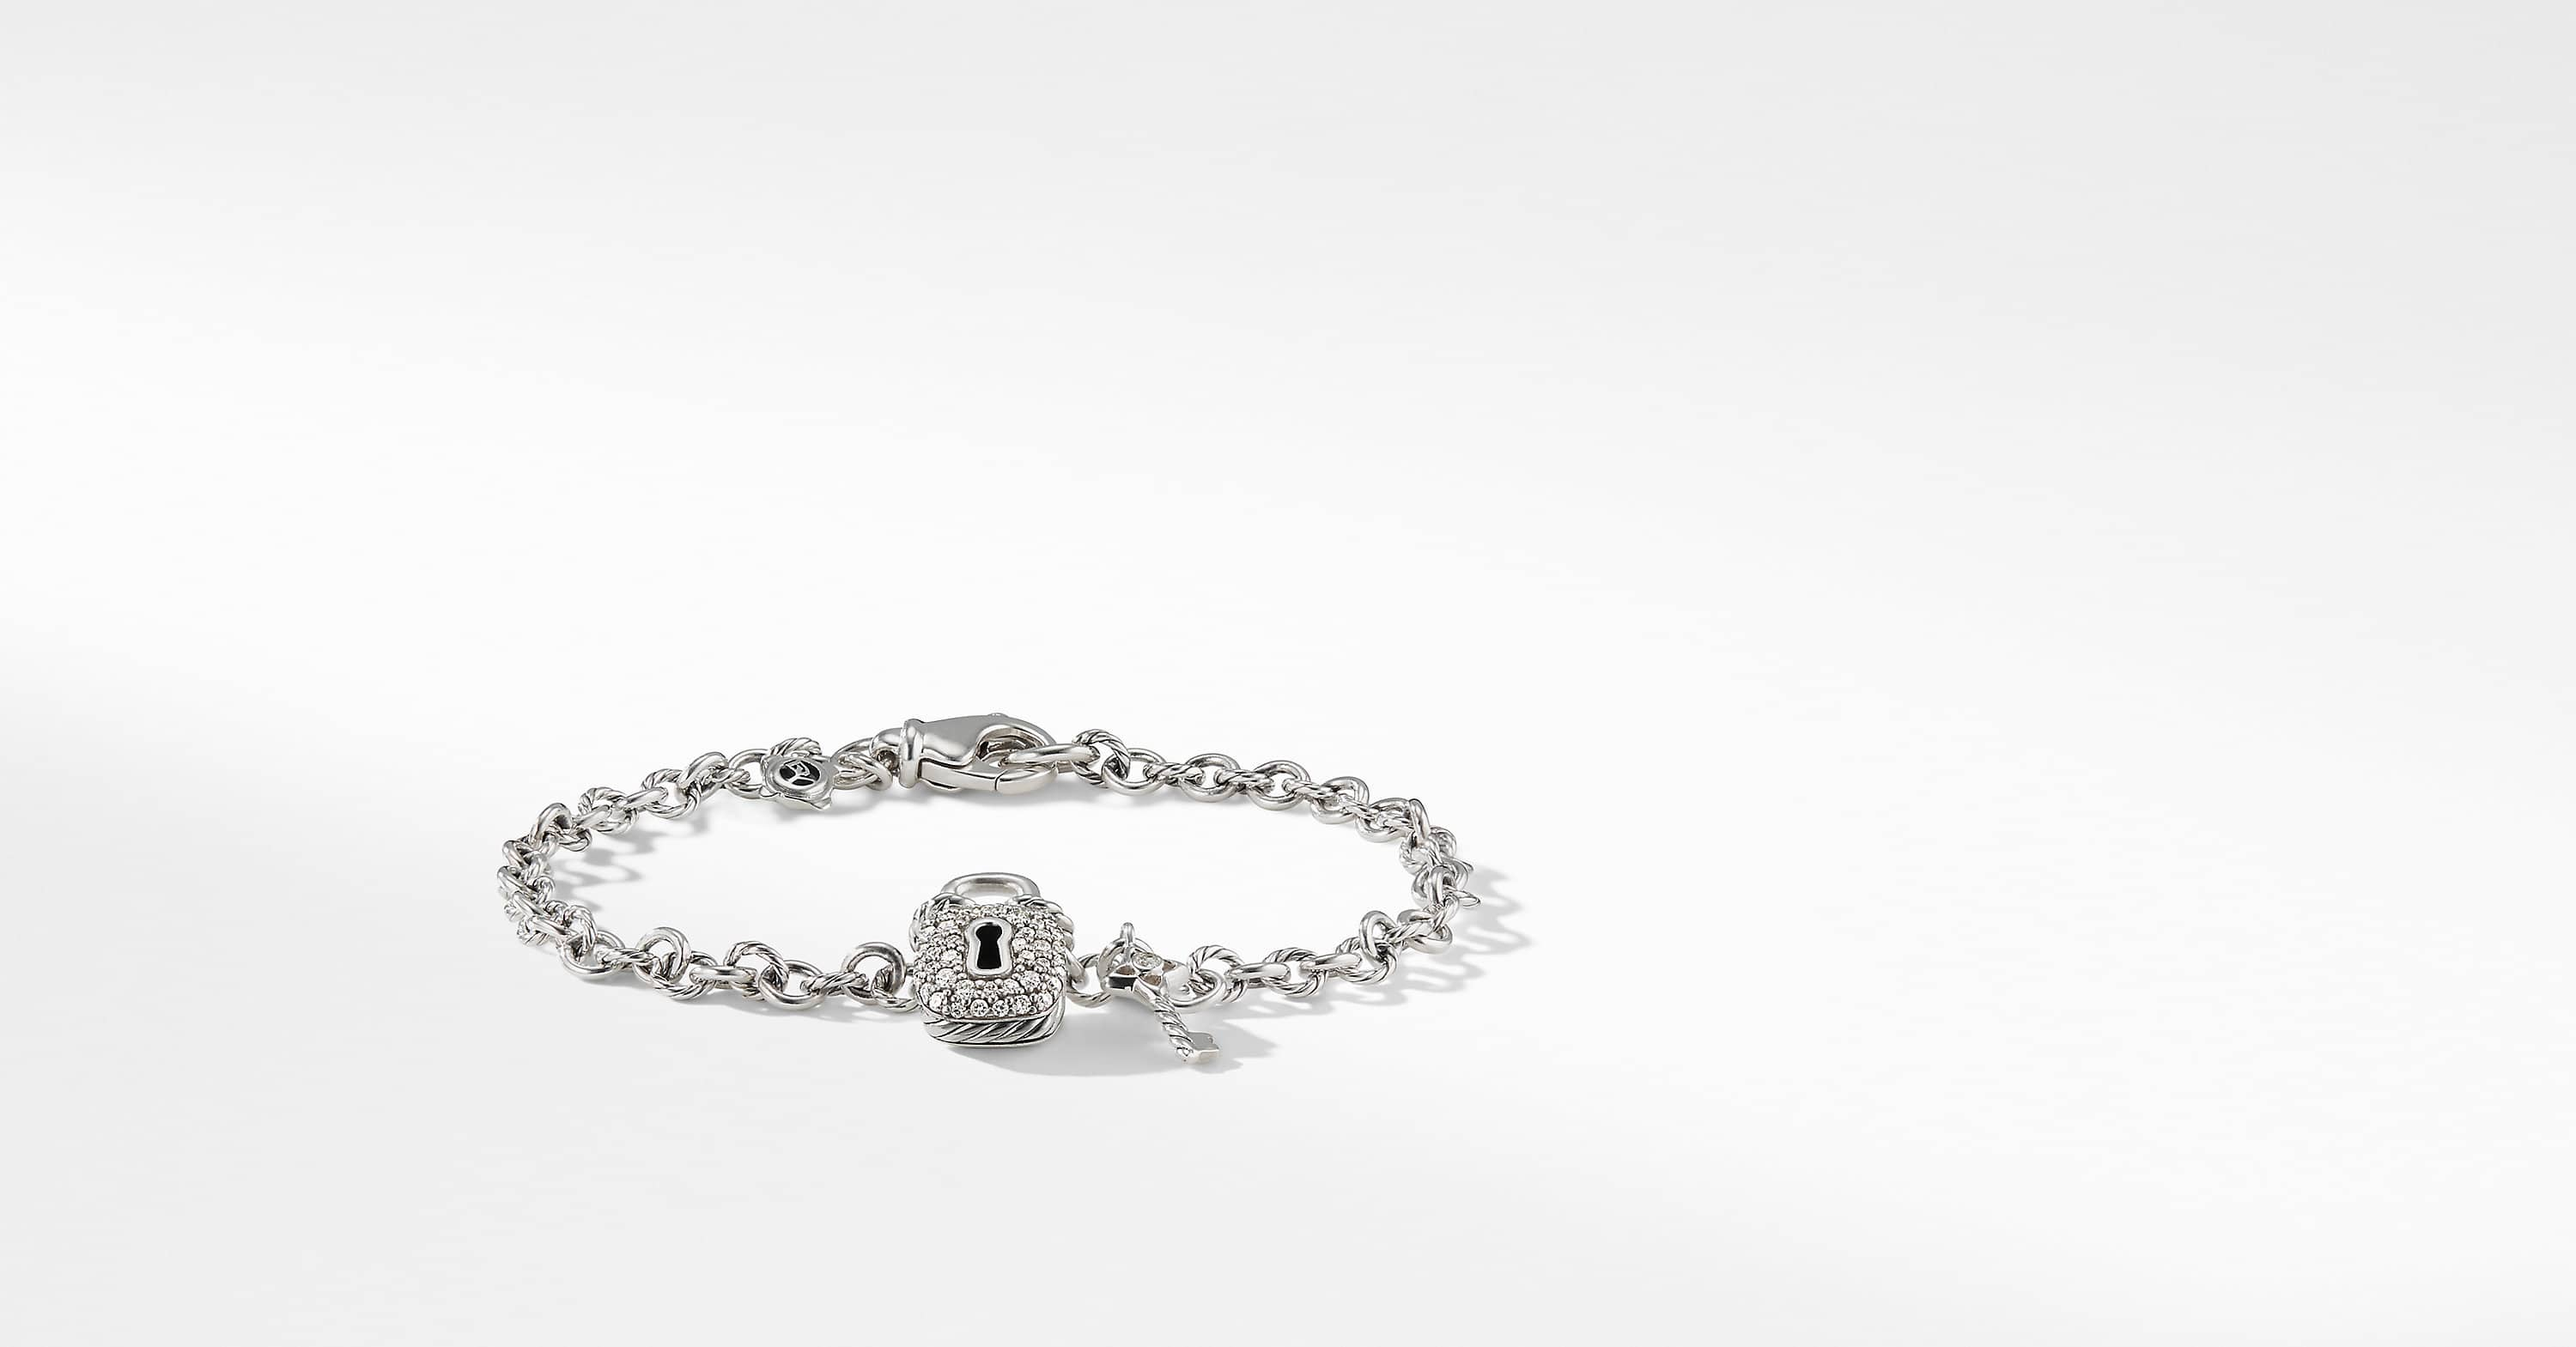 Cable Collectibles Lock and Key Charm Bracelet with Diamonds